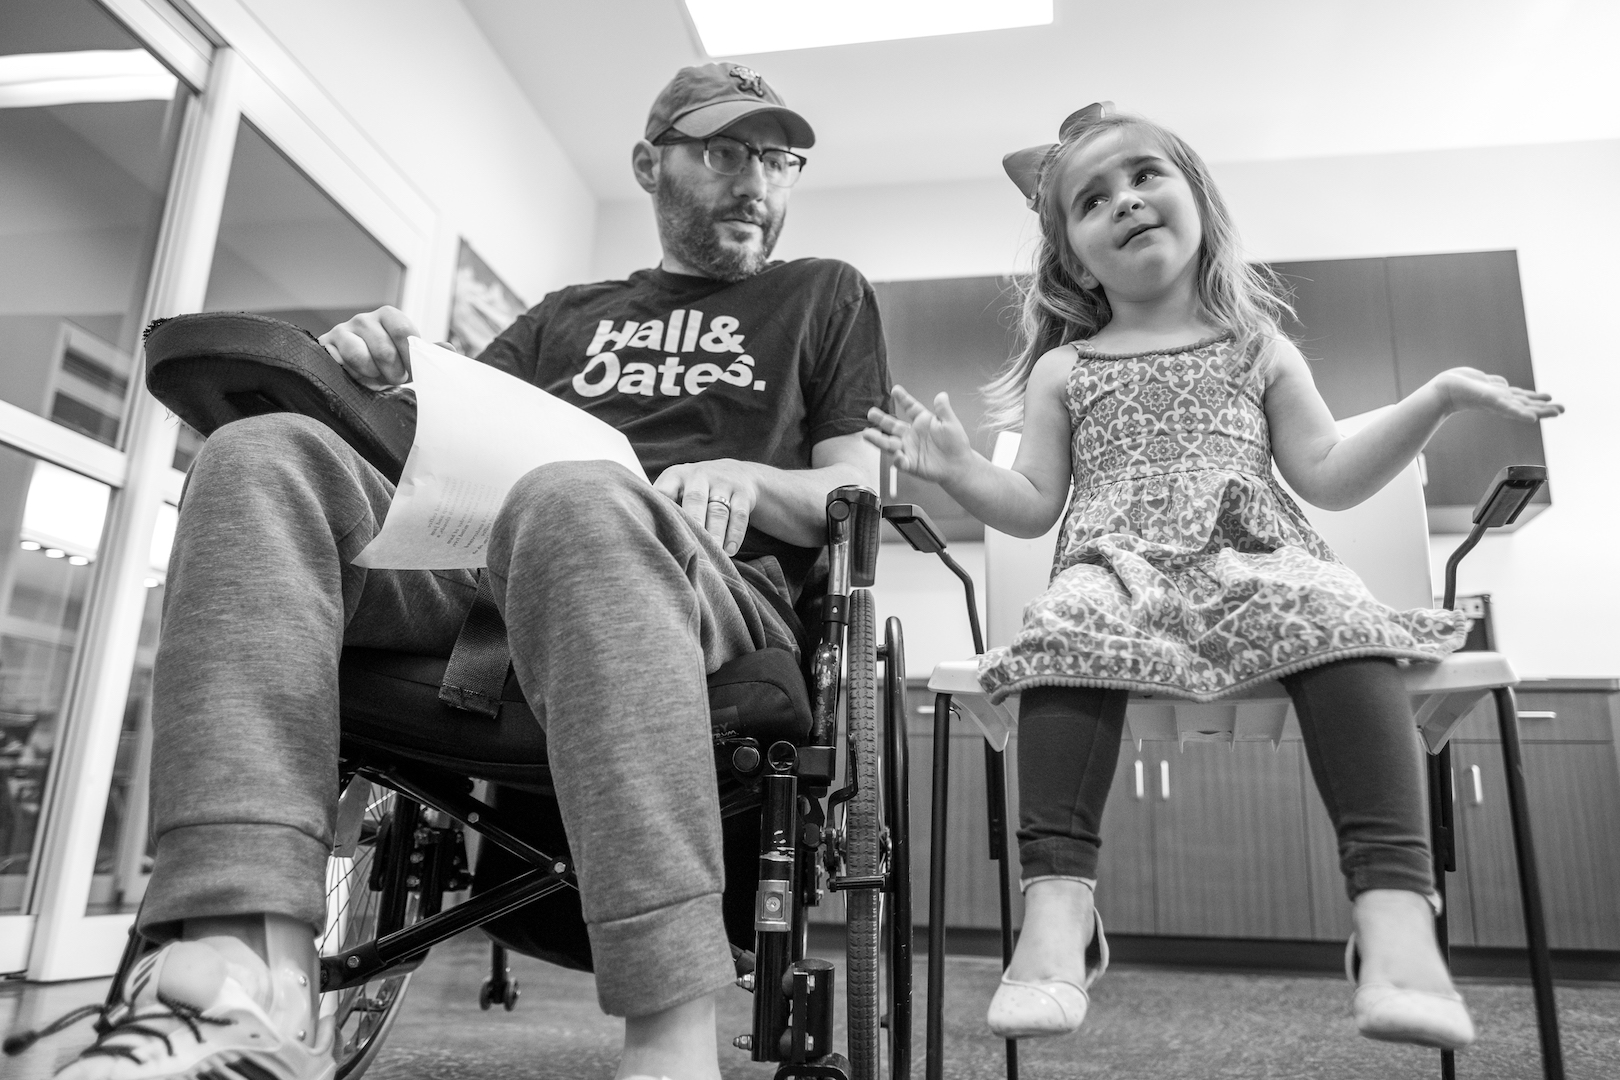 Lauren joins Mike during a music therapy session.